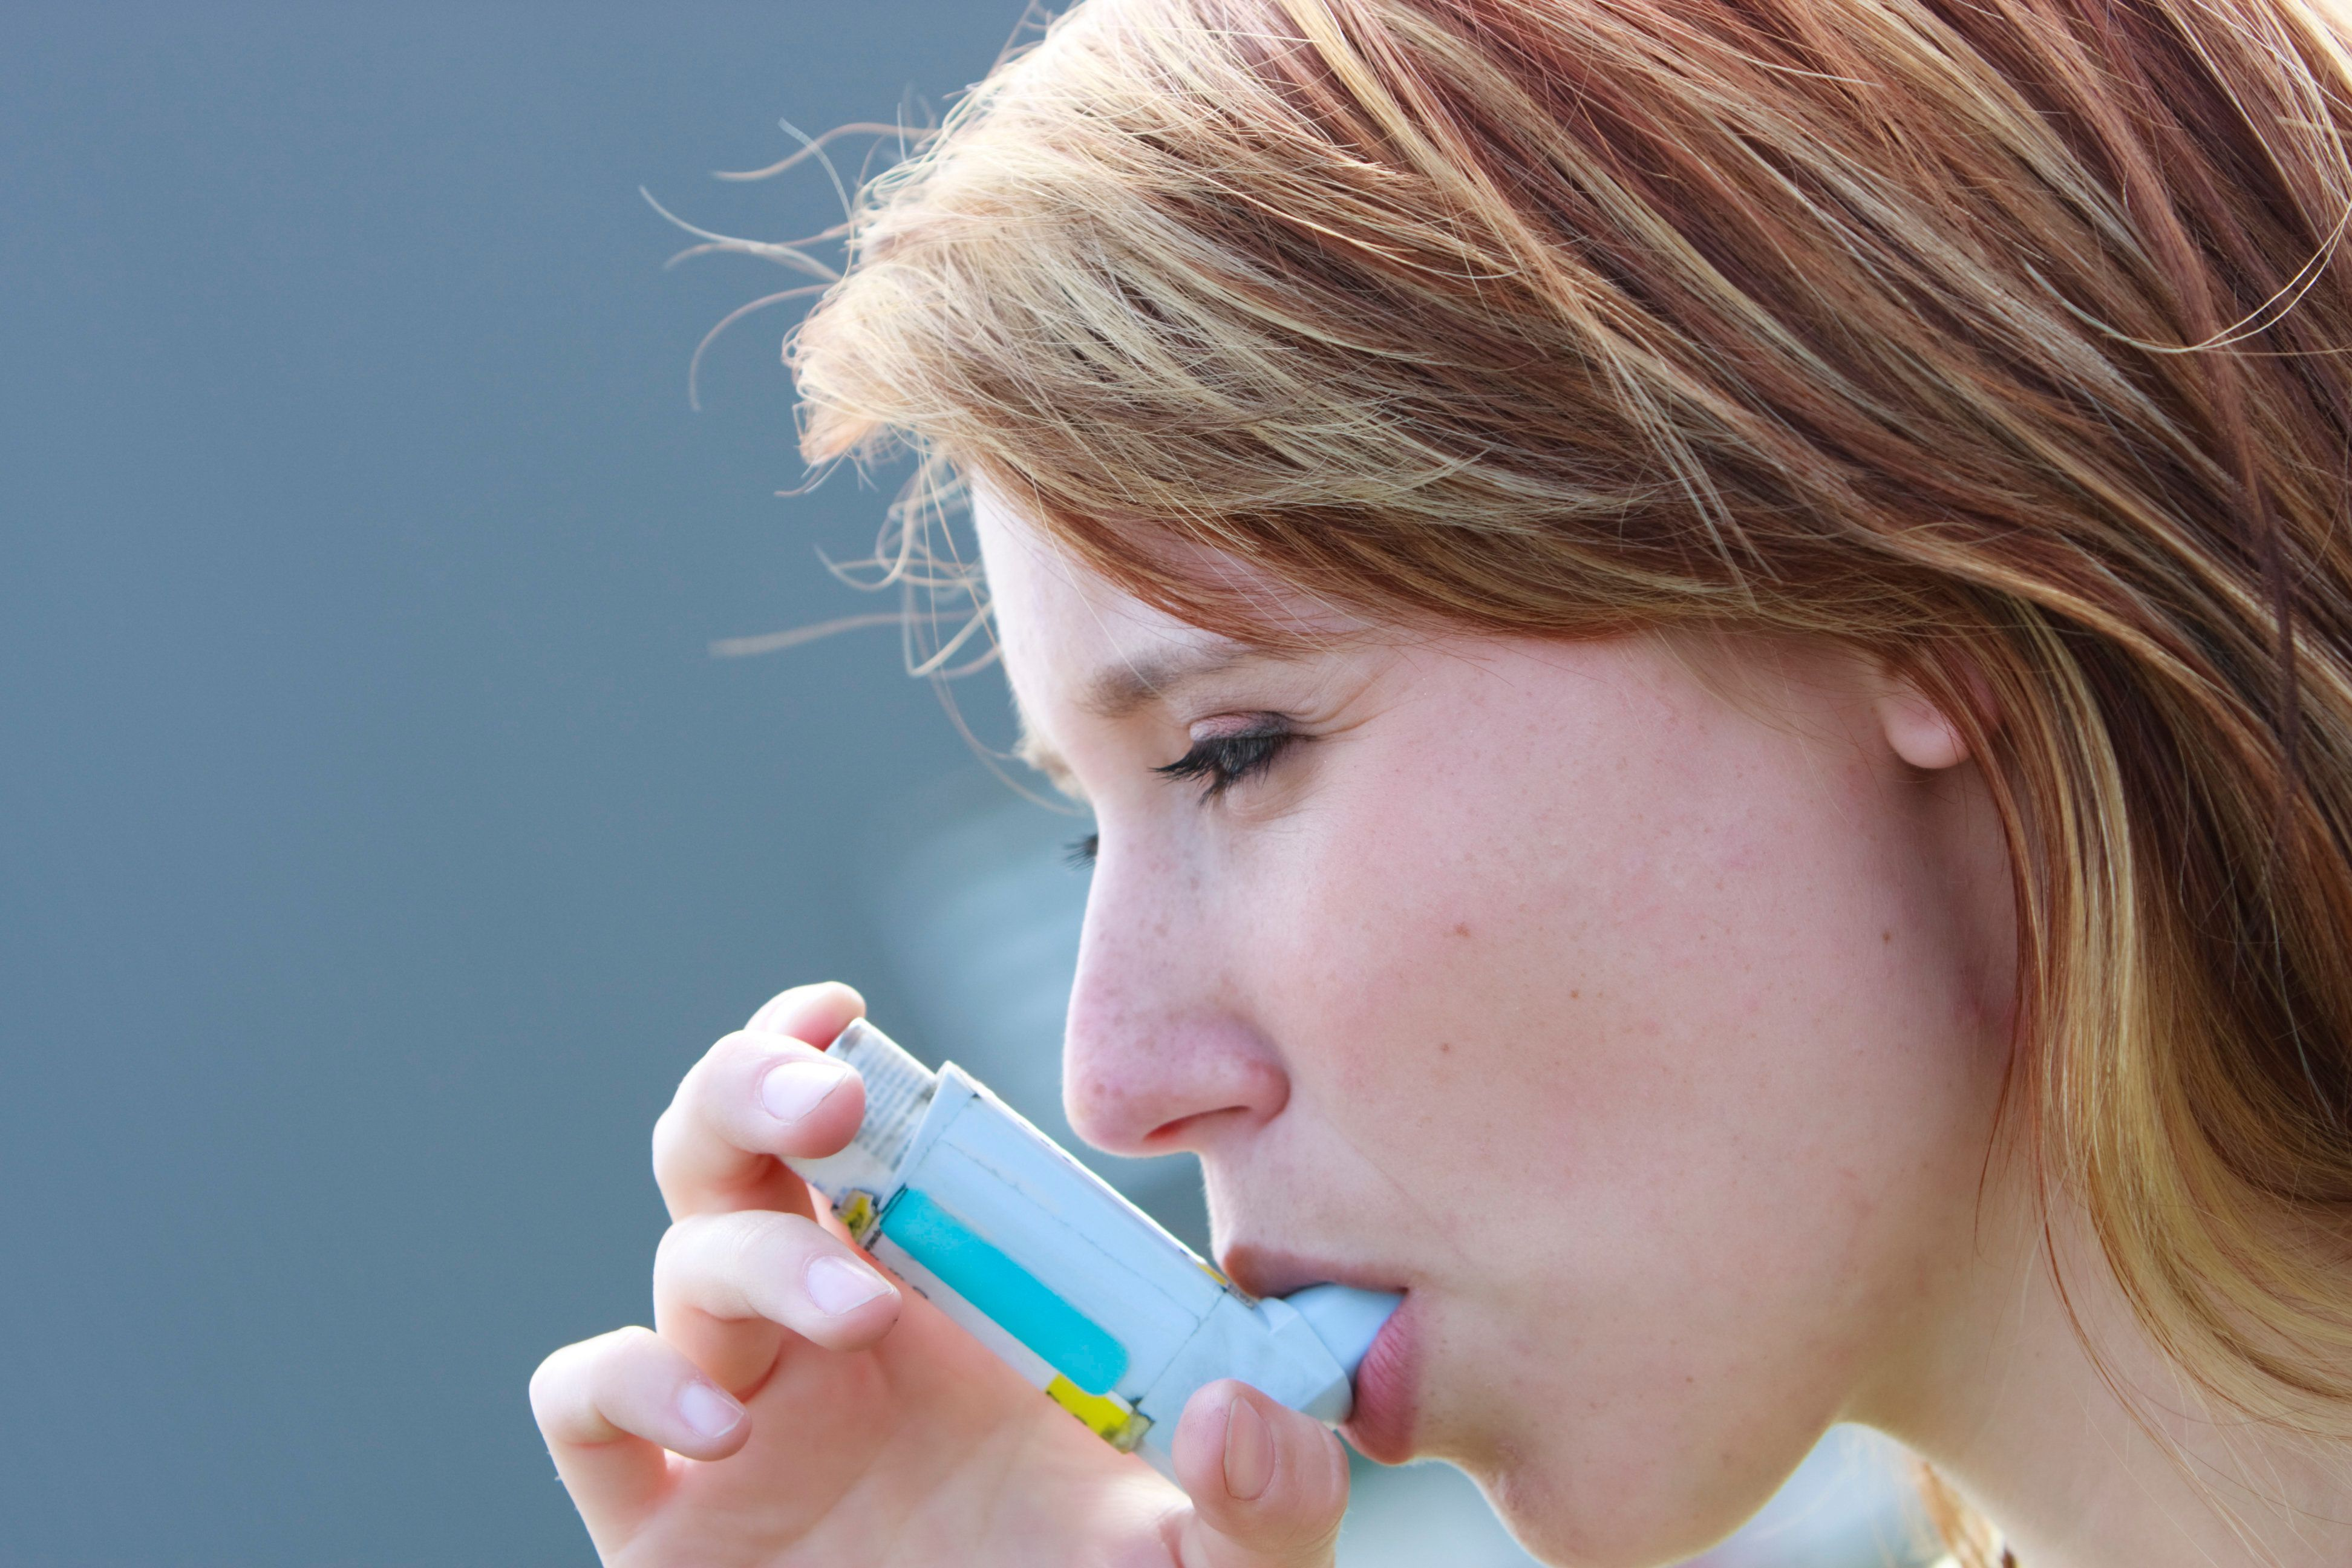 Third Of Adults Diagnosed With Asthma 'Do Not Have The